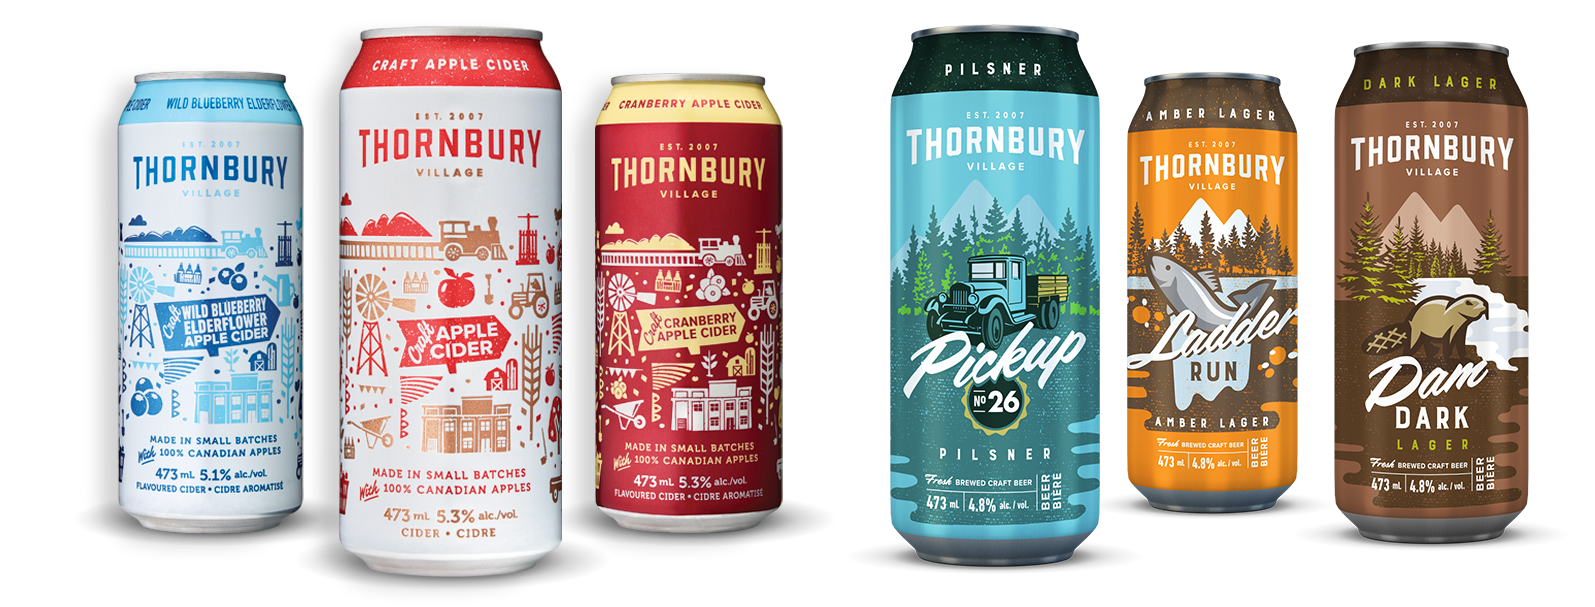 Thornbury-Products